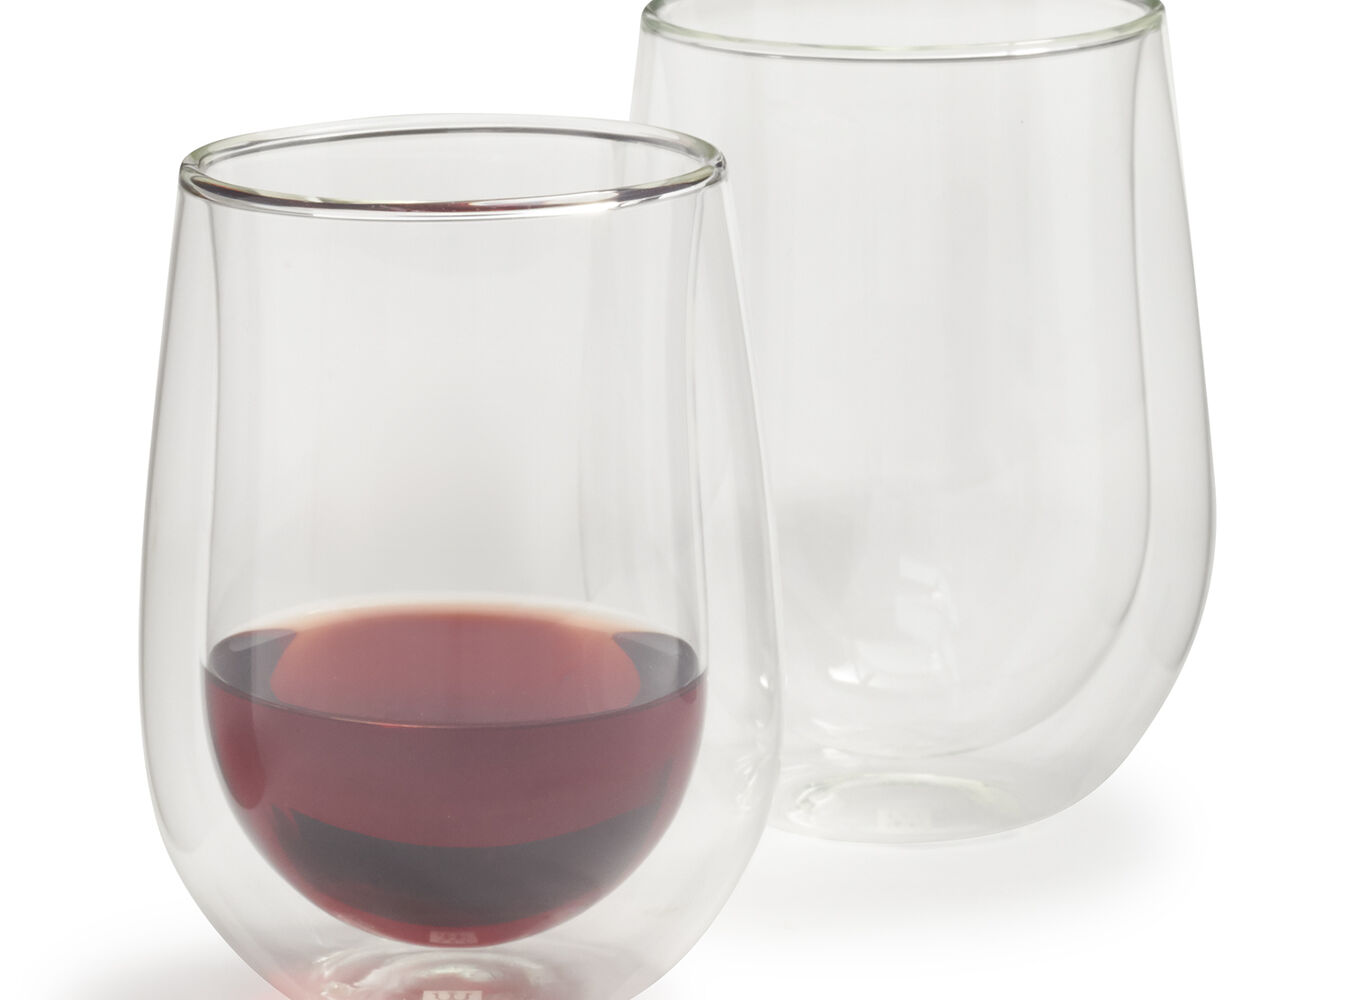 Zwilling J.A. Henckels Sorrento Double-Wall Stemless Wine Glasses, 12 oz., Set of 2 | Sur La Table